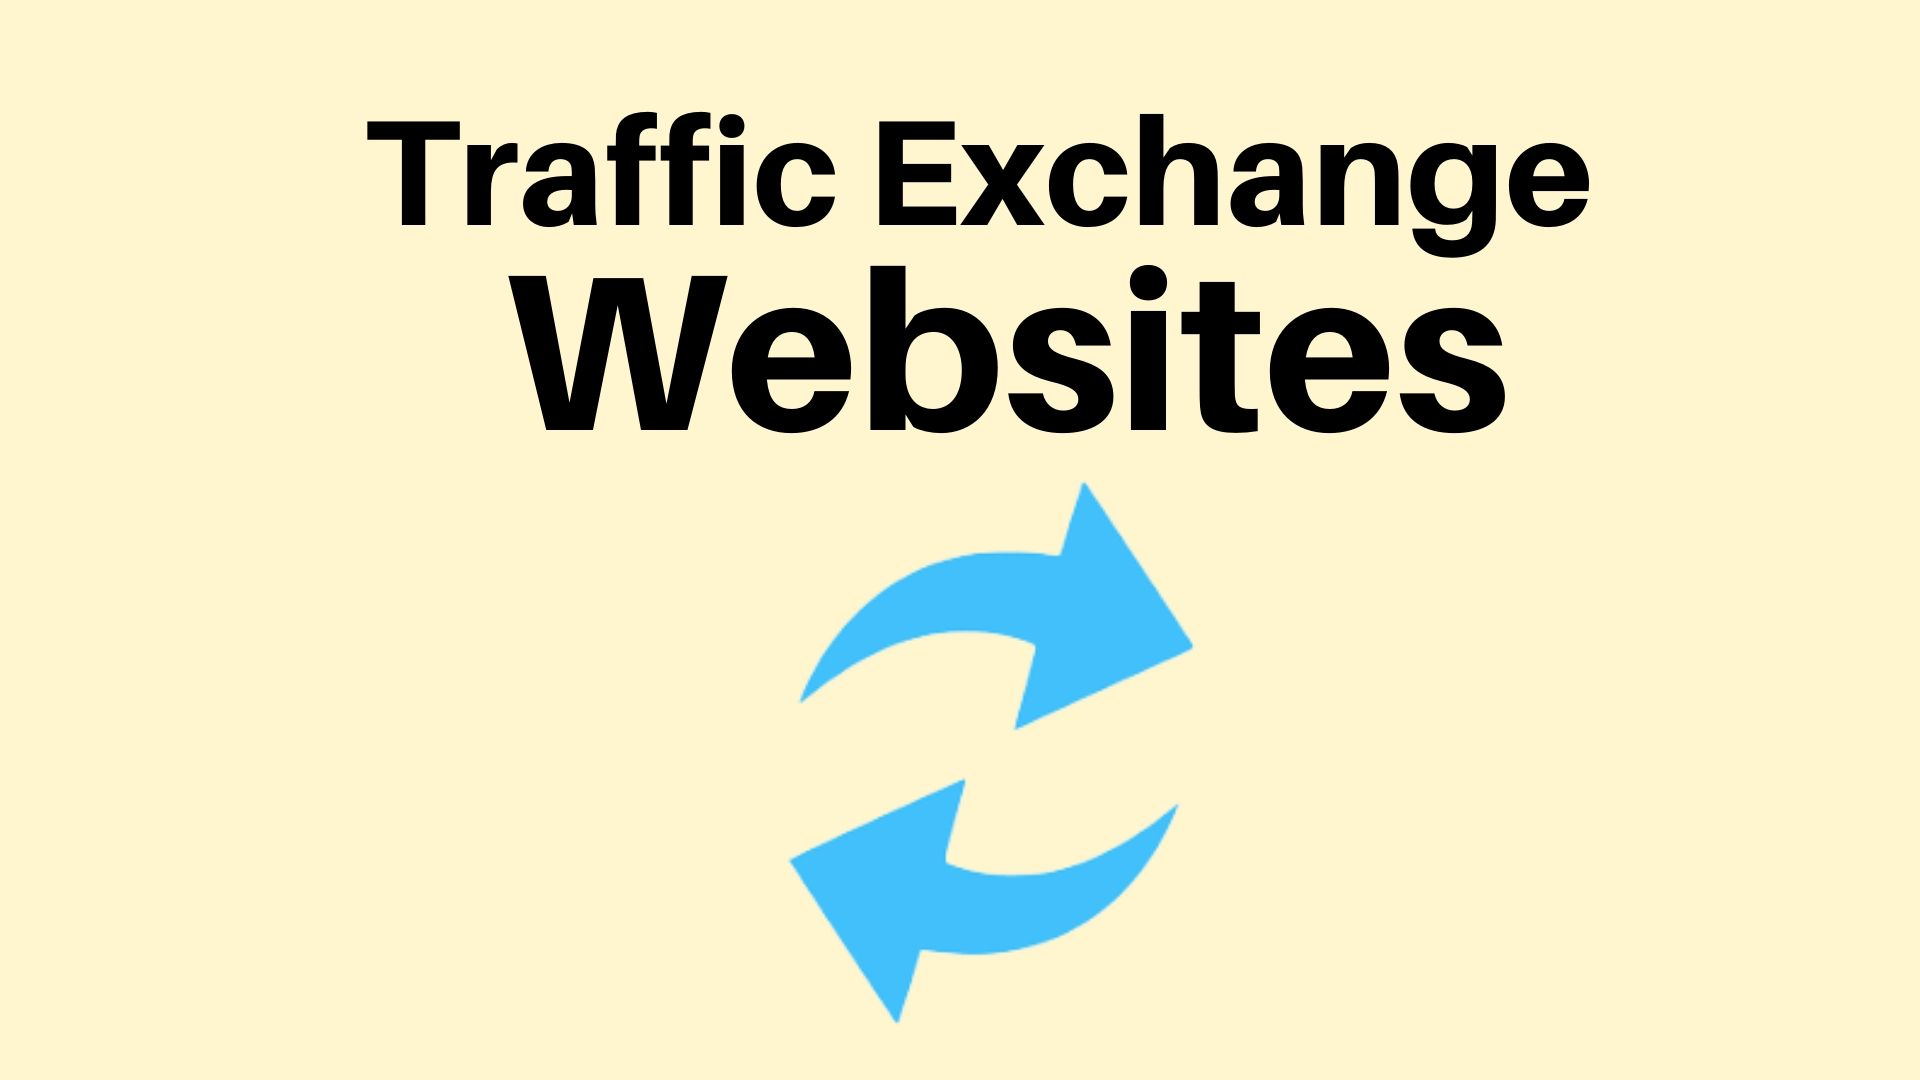 Traffic Exchange Websites